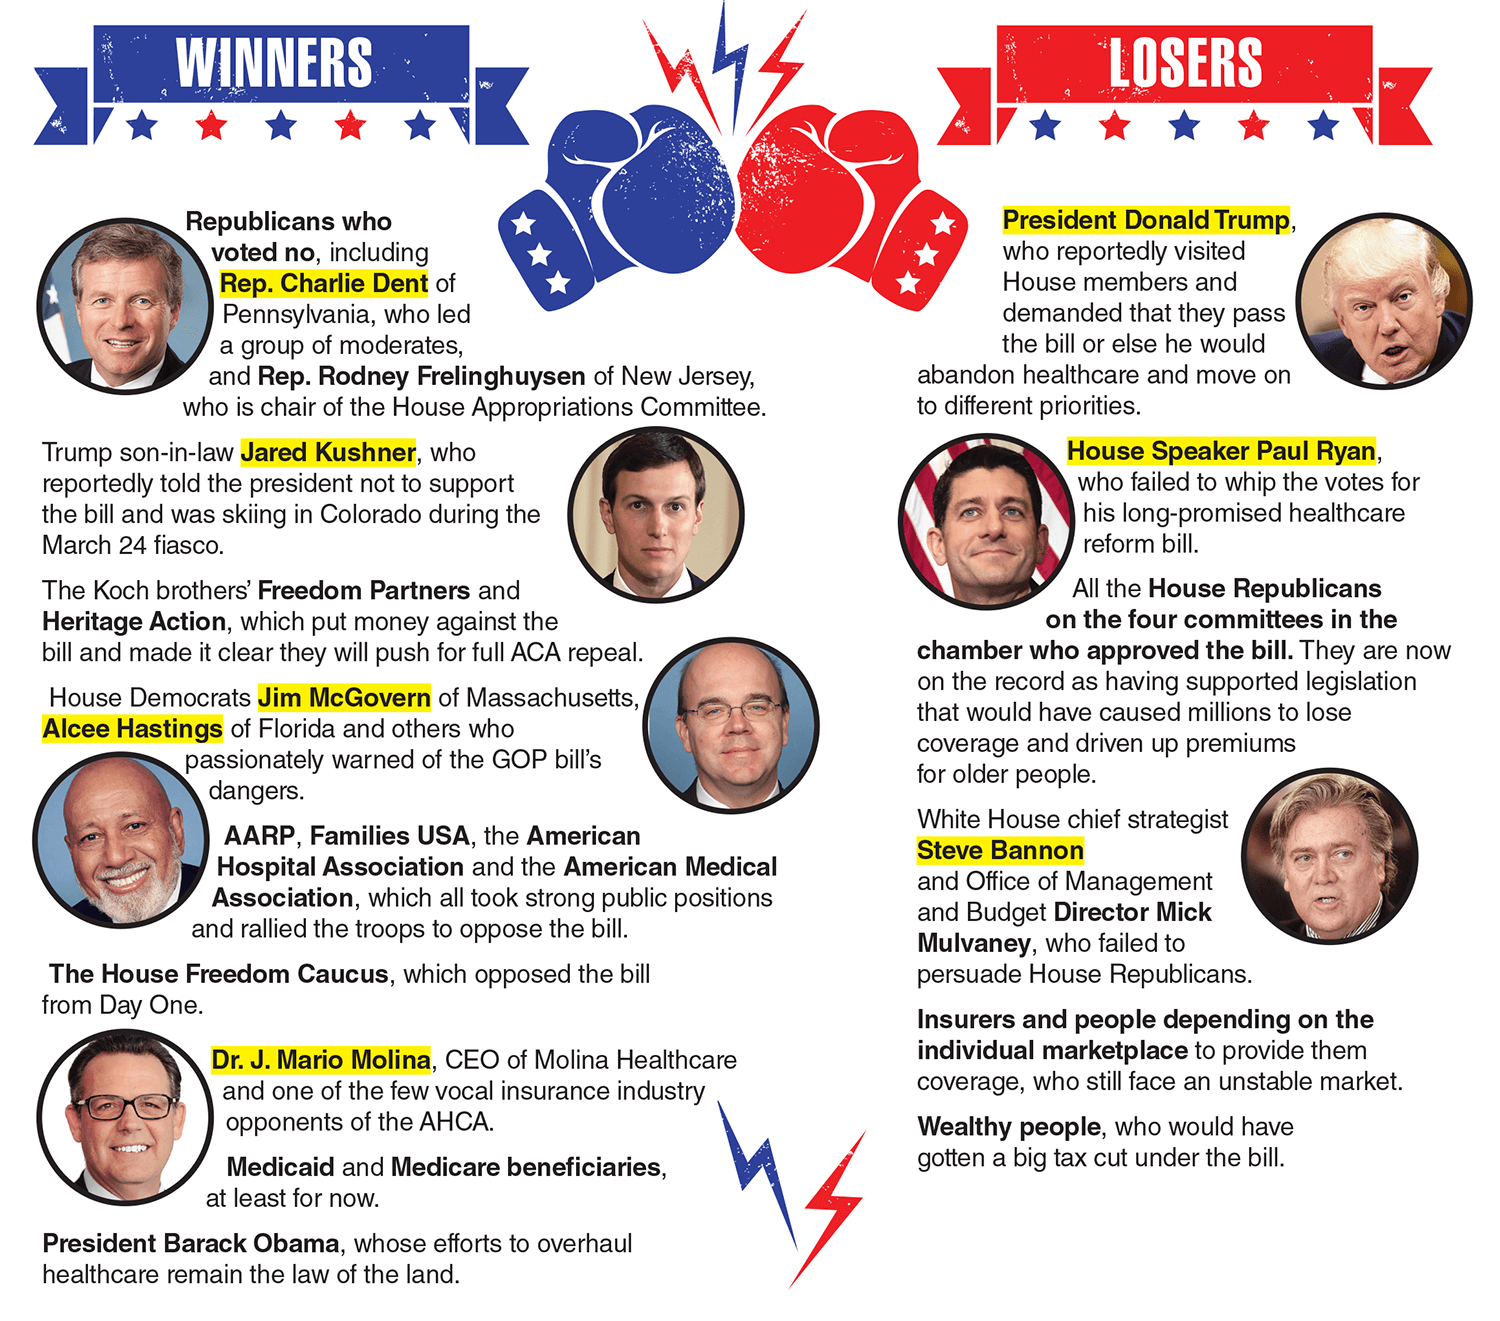 Obamacare repeal winners and losers